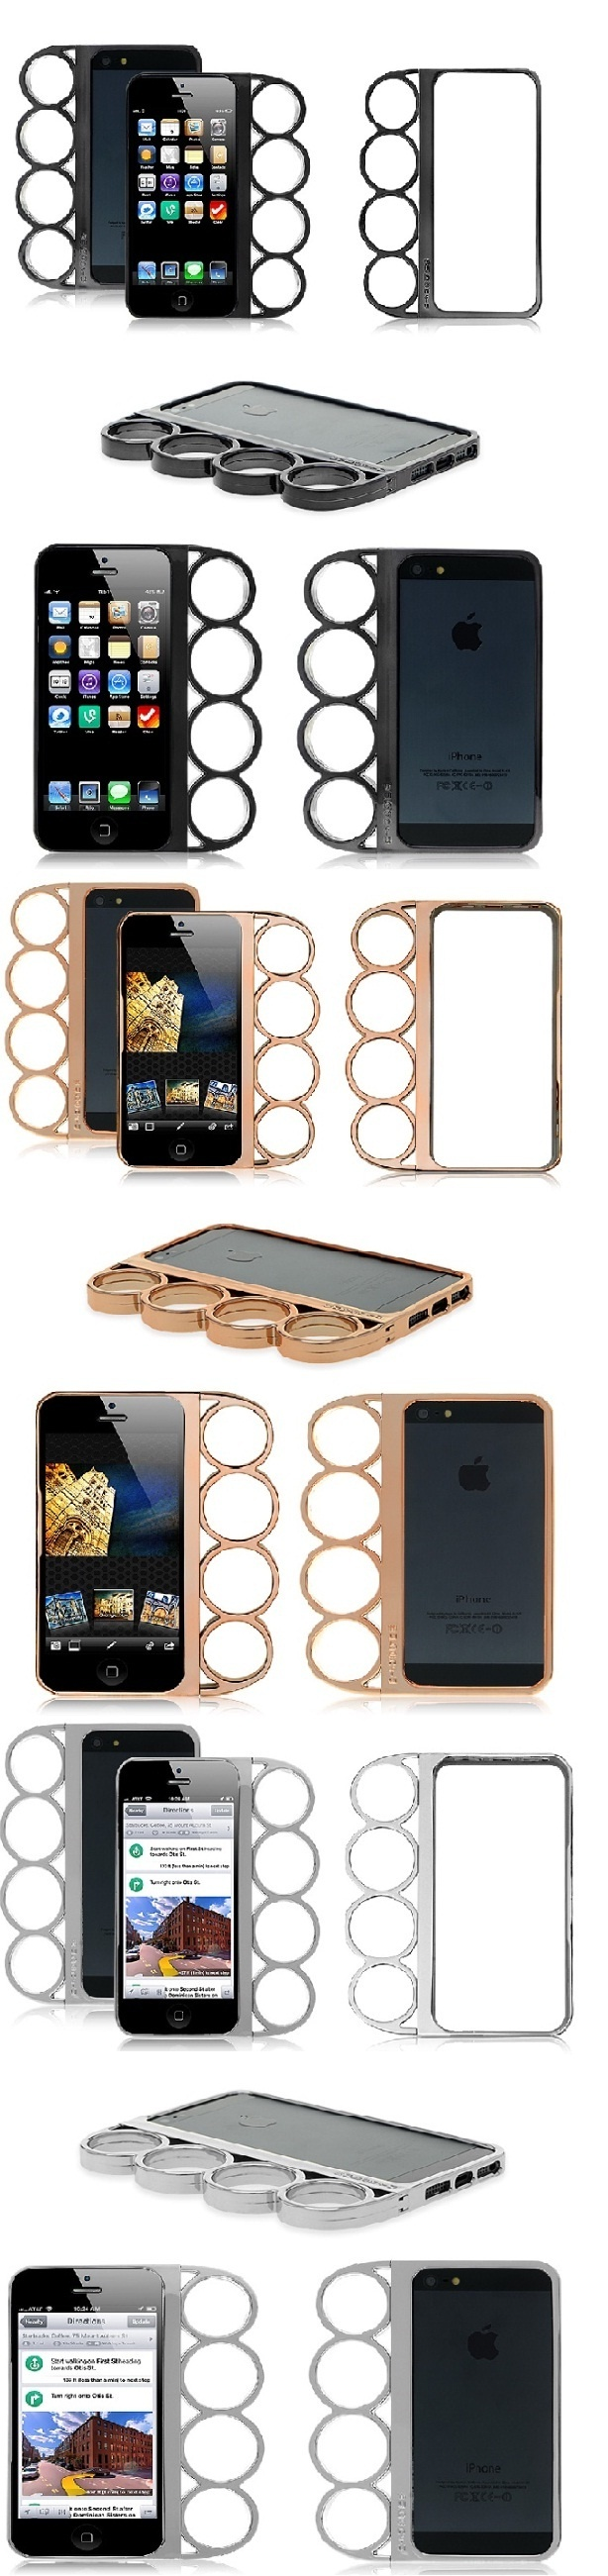 Rihanna's iPhone5 Knuckle Duster Black Silver or Gold Cover Case Knuckle Bumper for Apple iPhone 5 #cellz.com #rihanna #Knuckleduster #iphone5 #case #famous #singer #lucury #cover $6.43